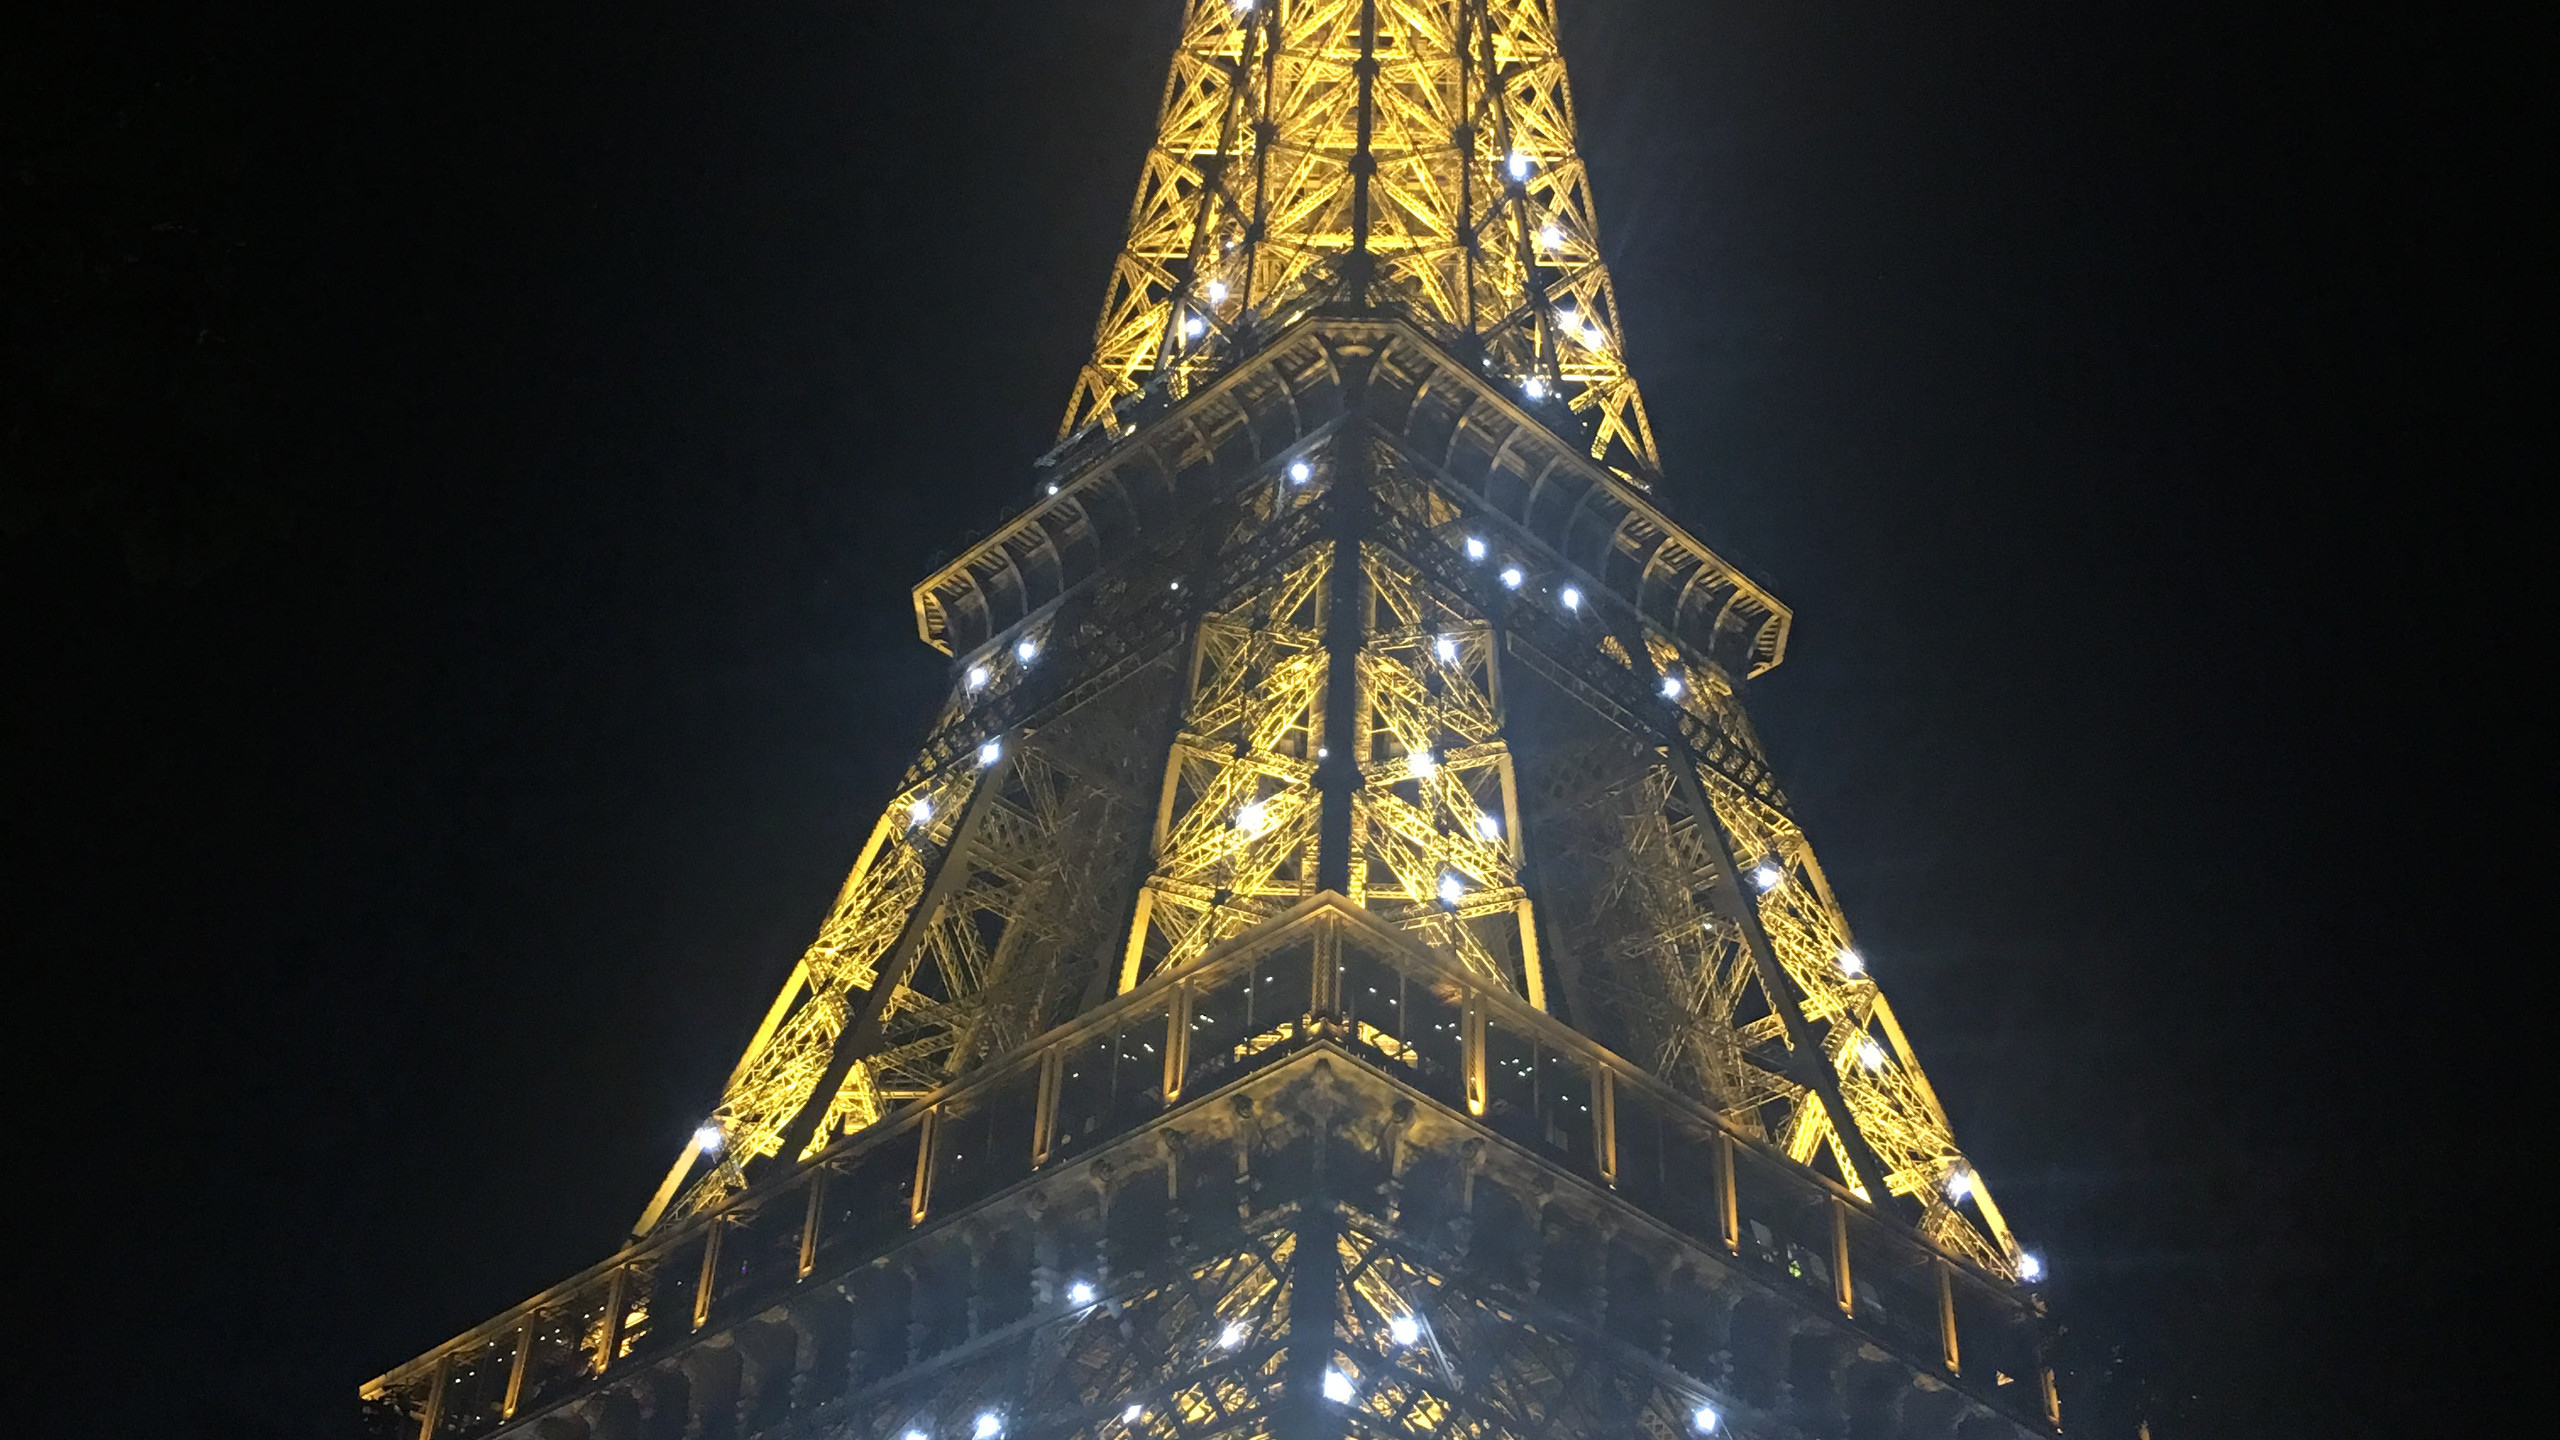 Lovely Eiffel Tower!